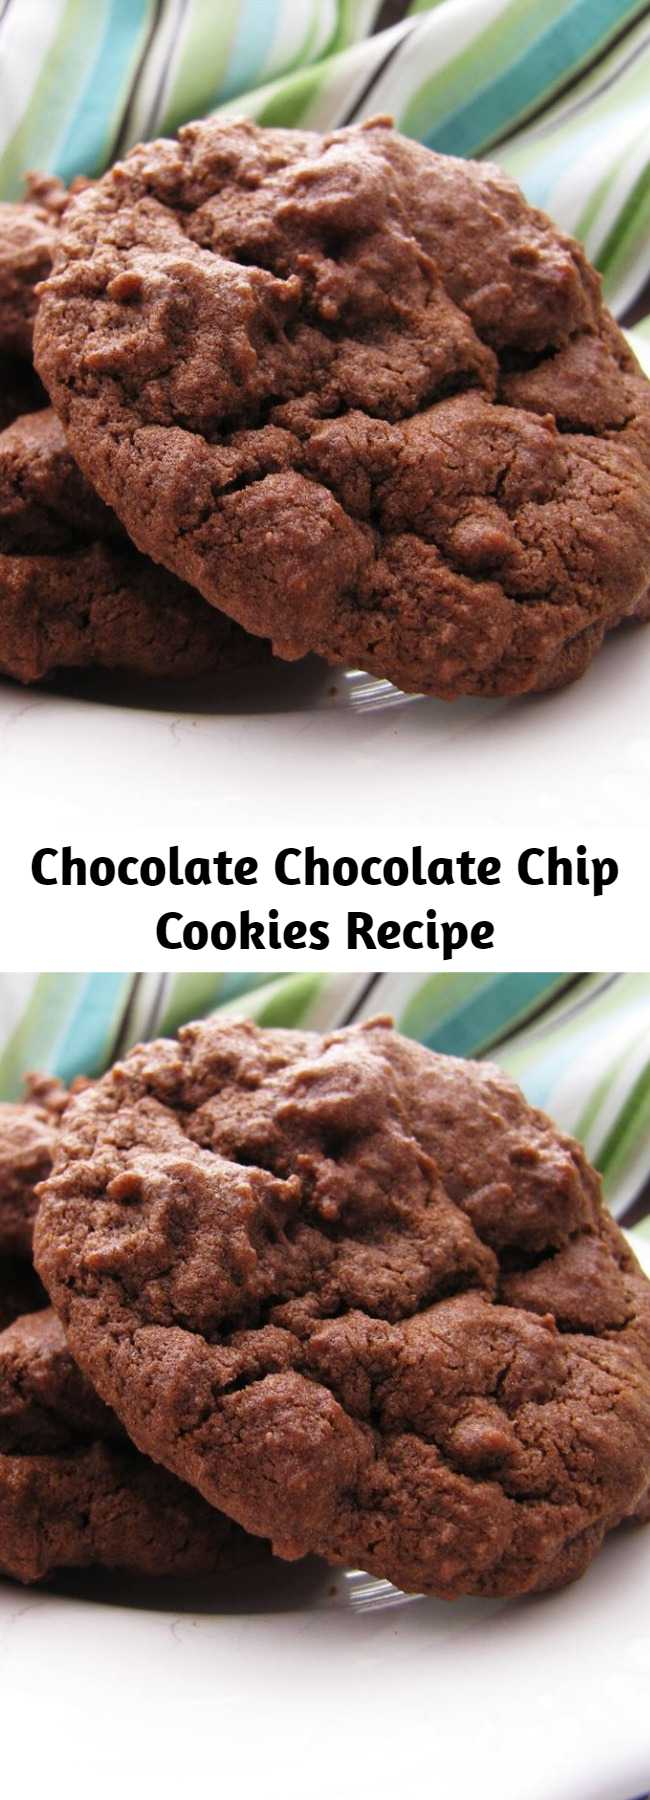 Chocolate Chocolate Chip Cookies Recipe - Deep chocolate flavor, pleasantly (but not overly) sweet, soft texture but not too gooey, perfect height (not flat) and just downright irresistible!